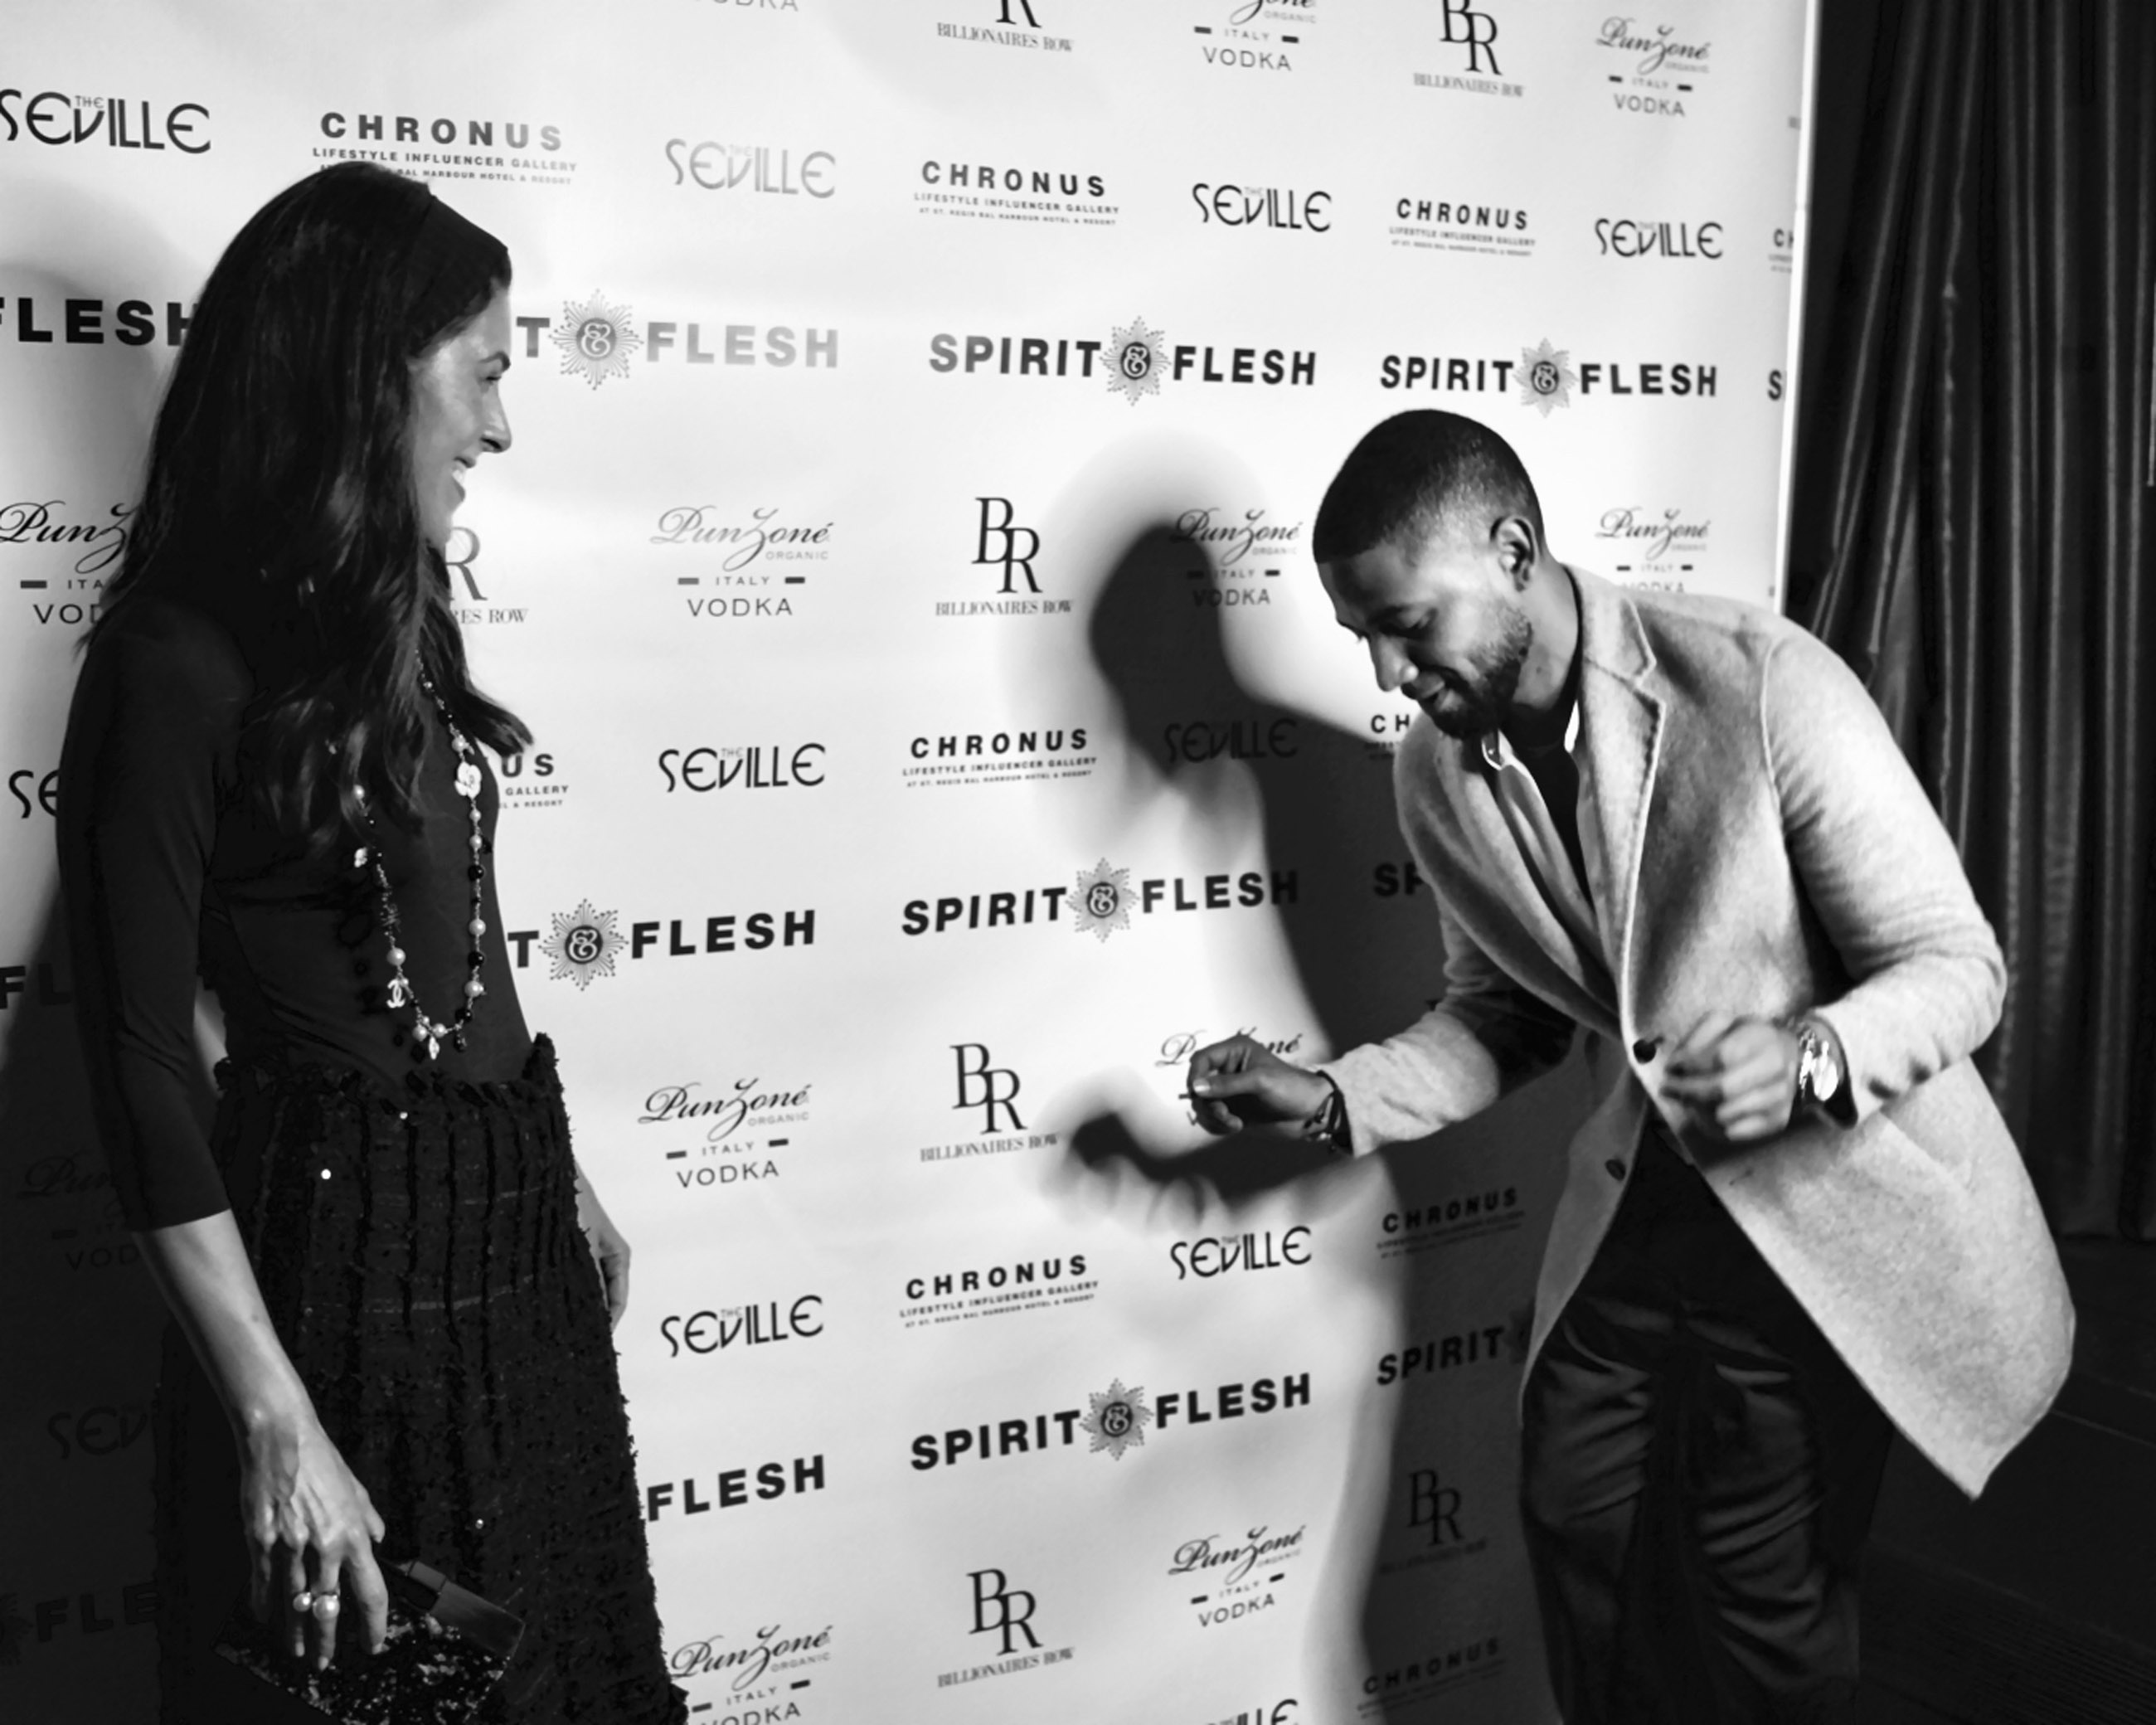 Spirit & Flesh Magazine cover event, Cheryl Scharf & Jussie Smollett by Antonio Navas